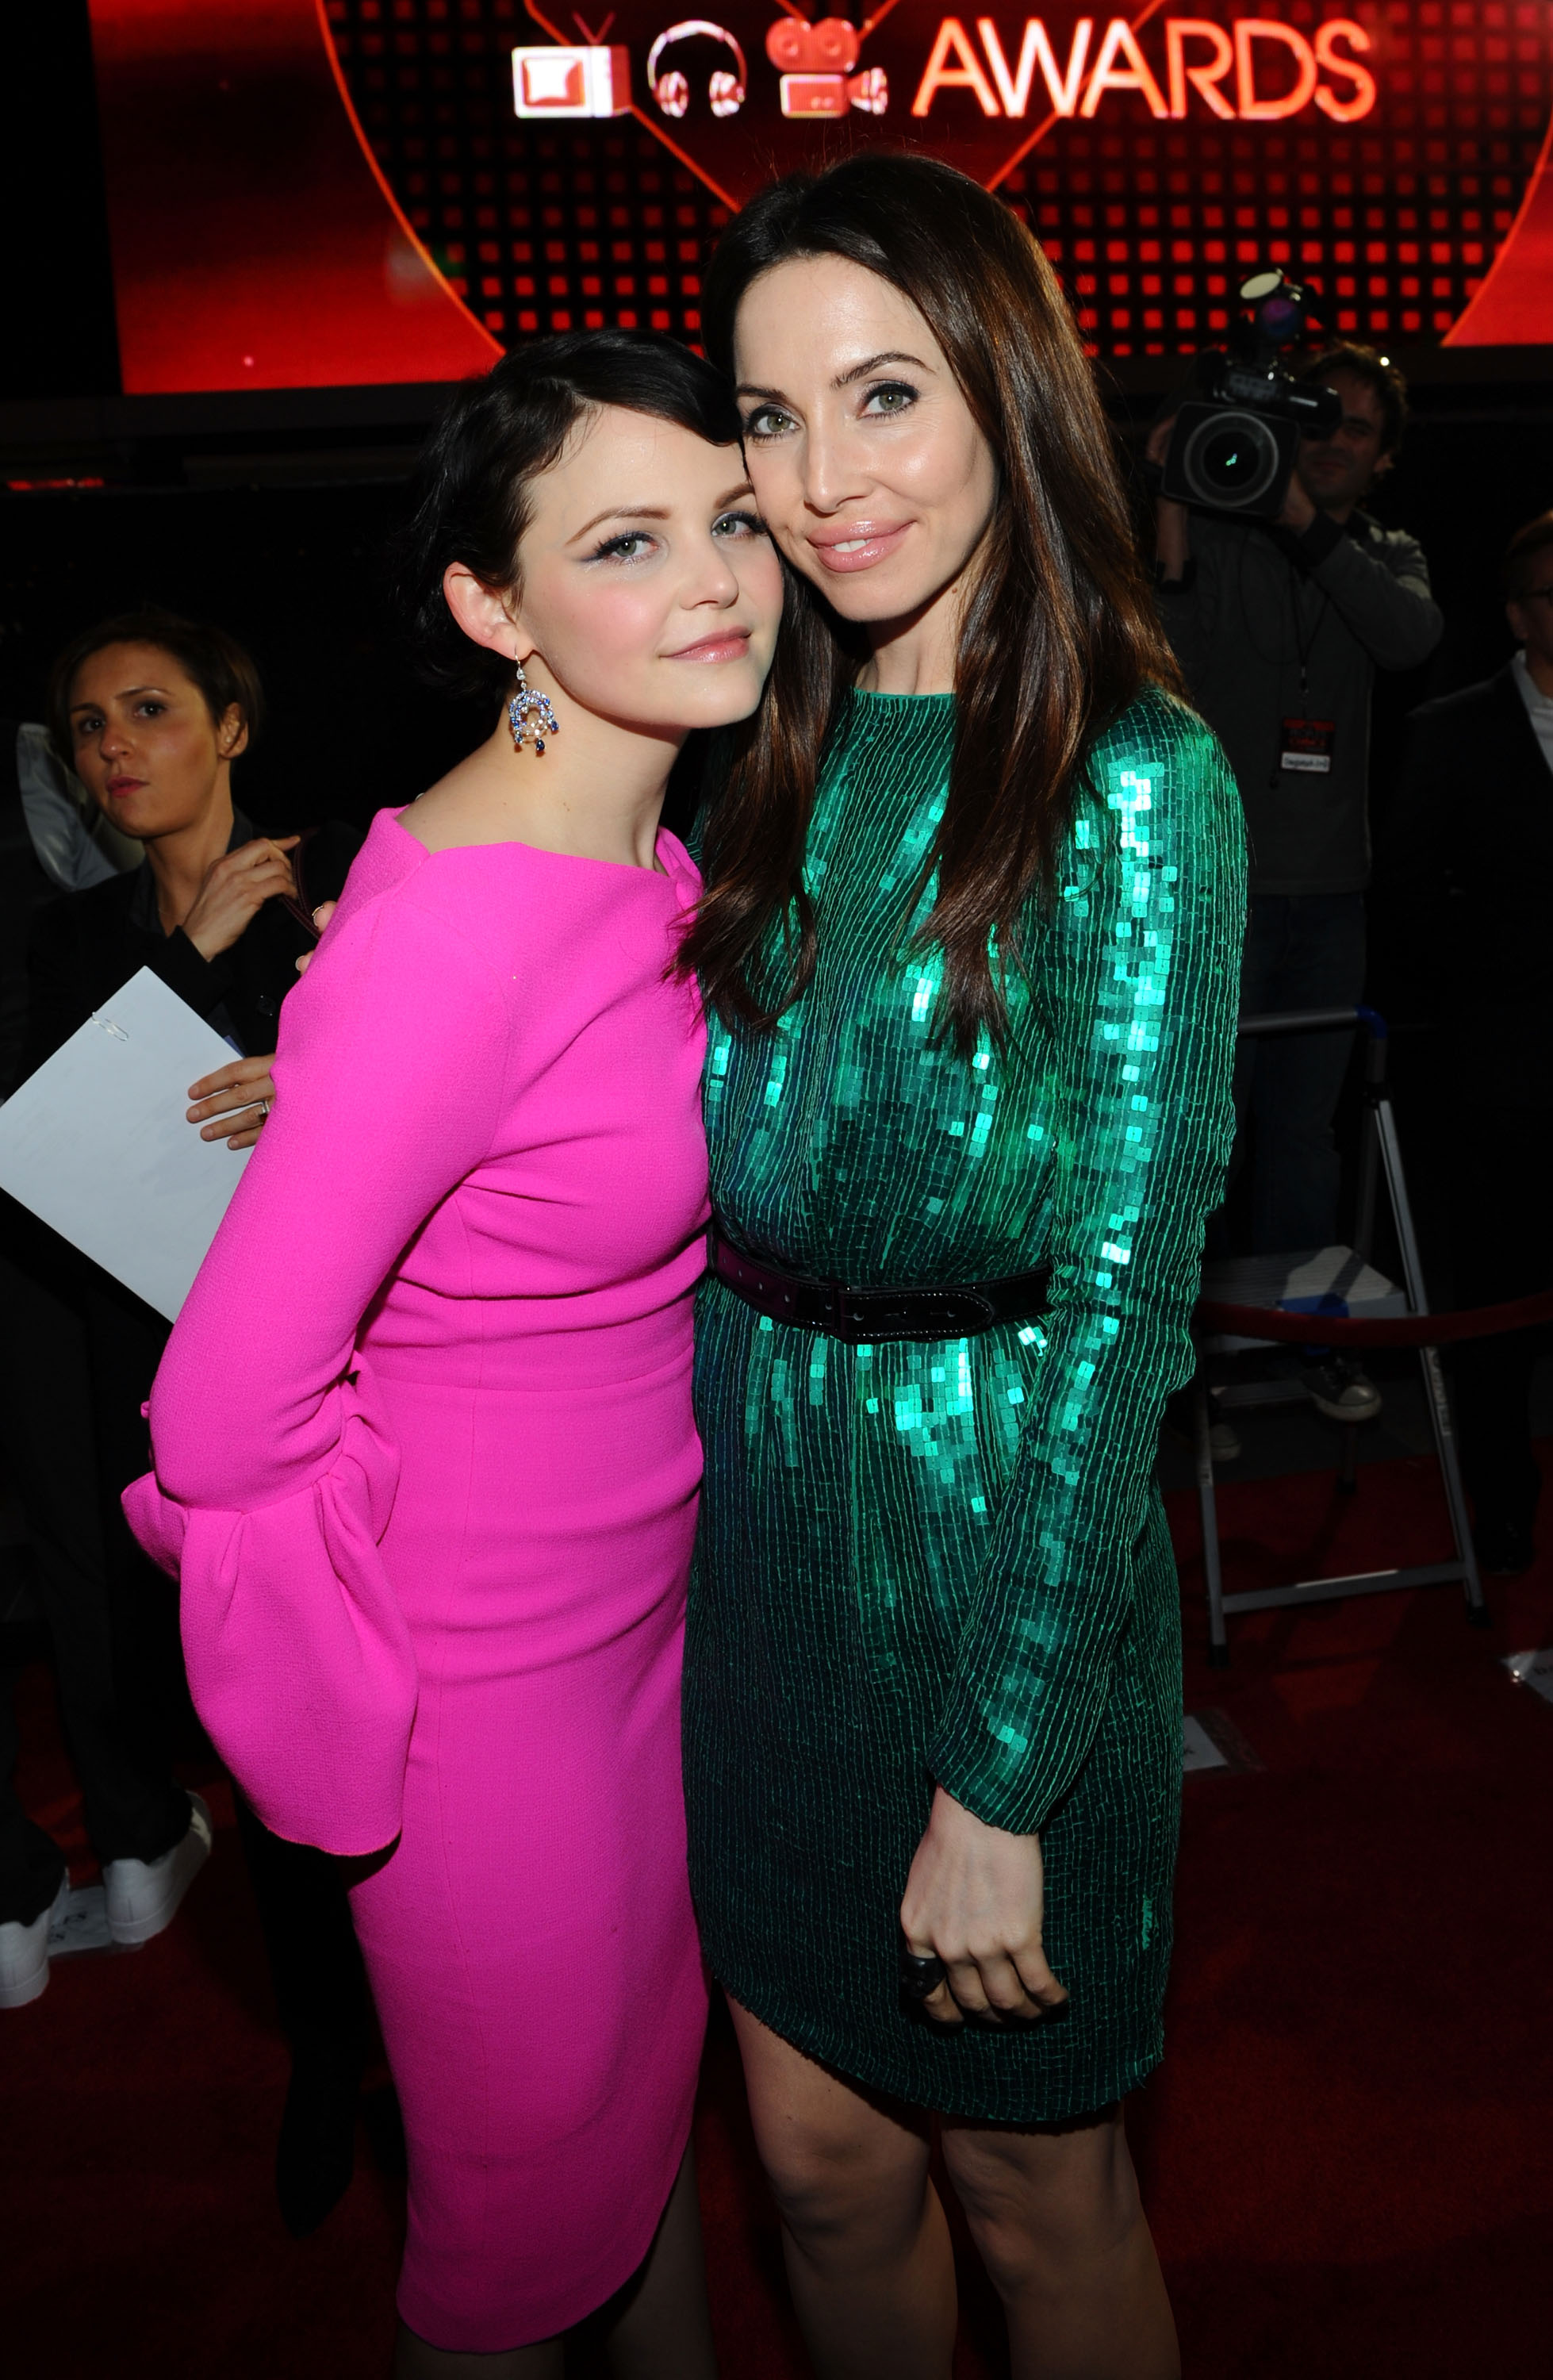 Whitney Cummings and Ginnifer Goodwin at the People's Choice Awards.